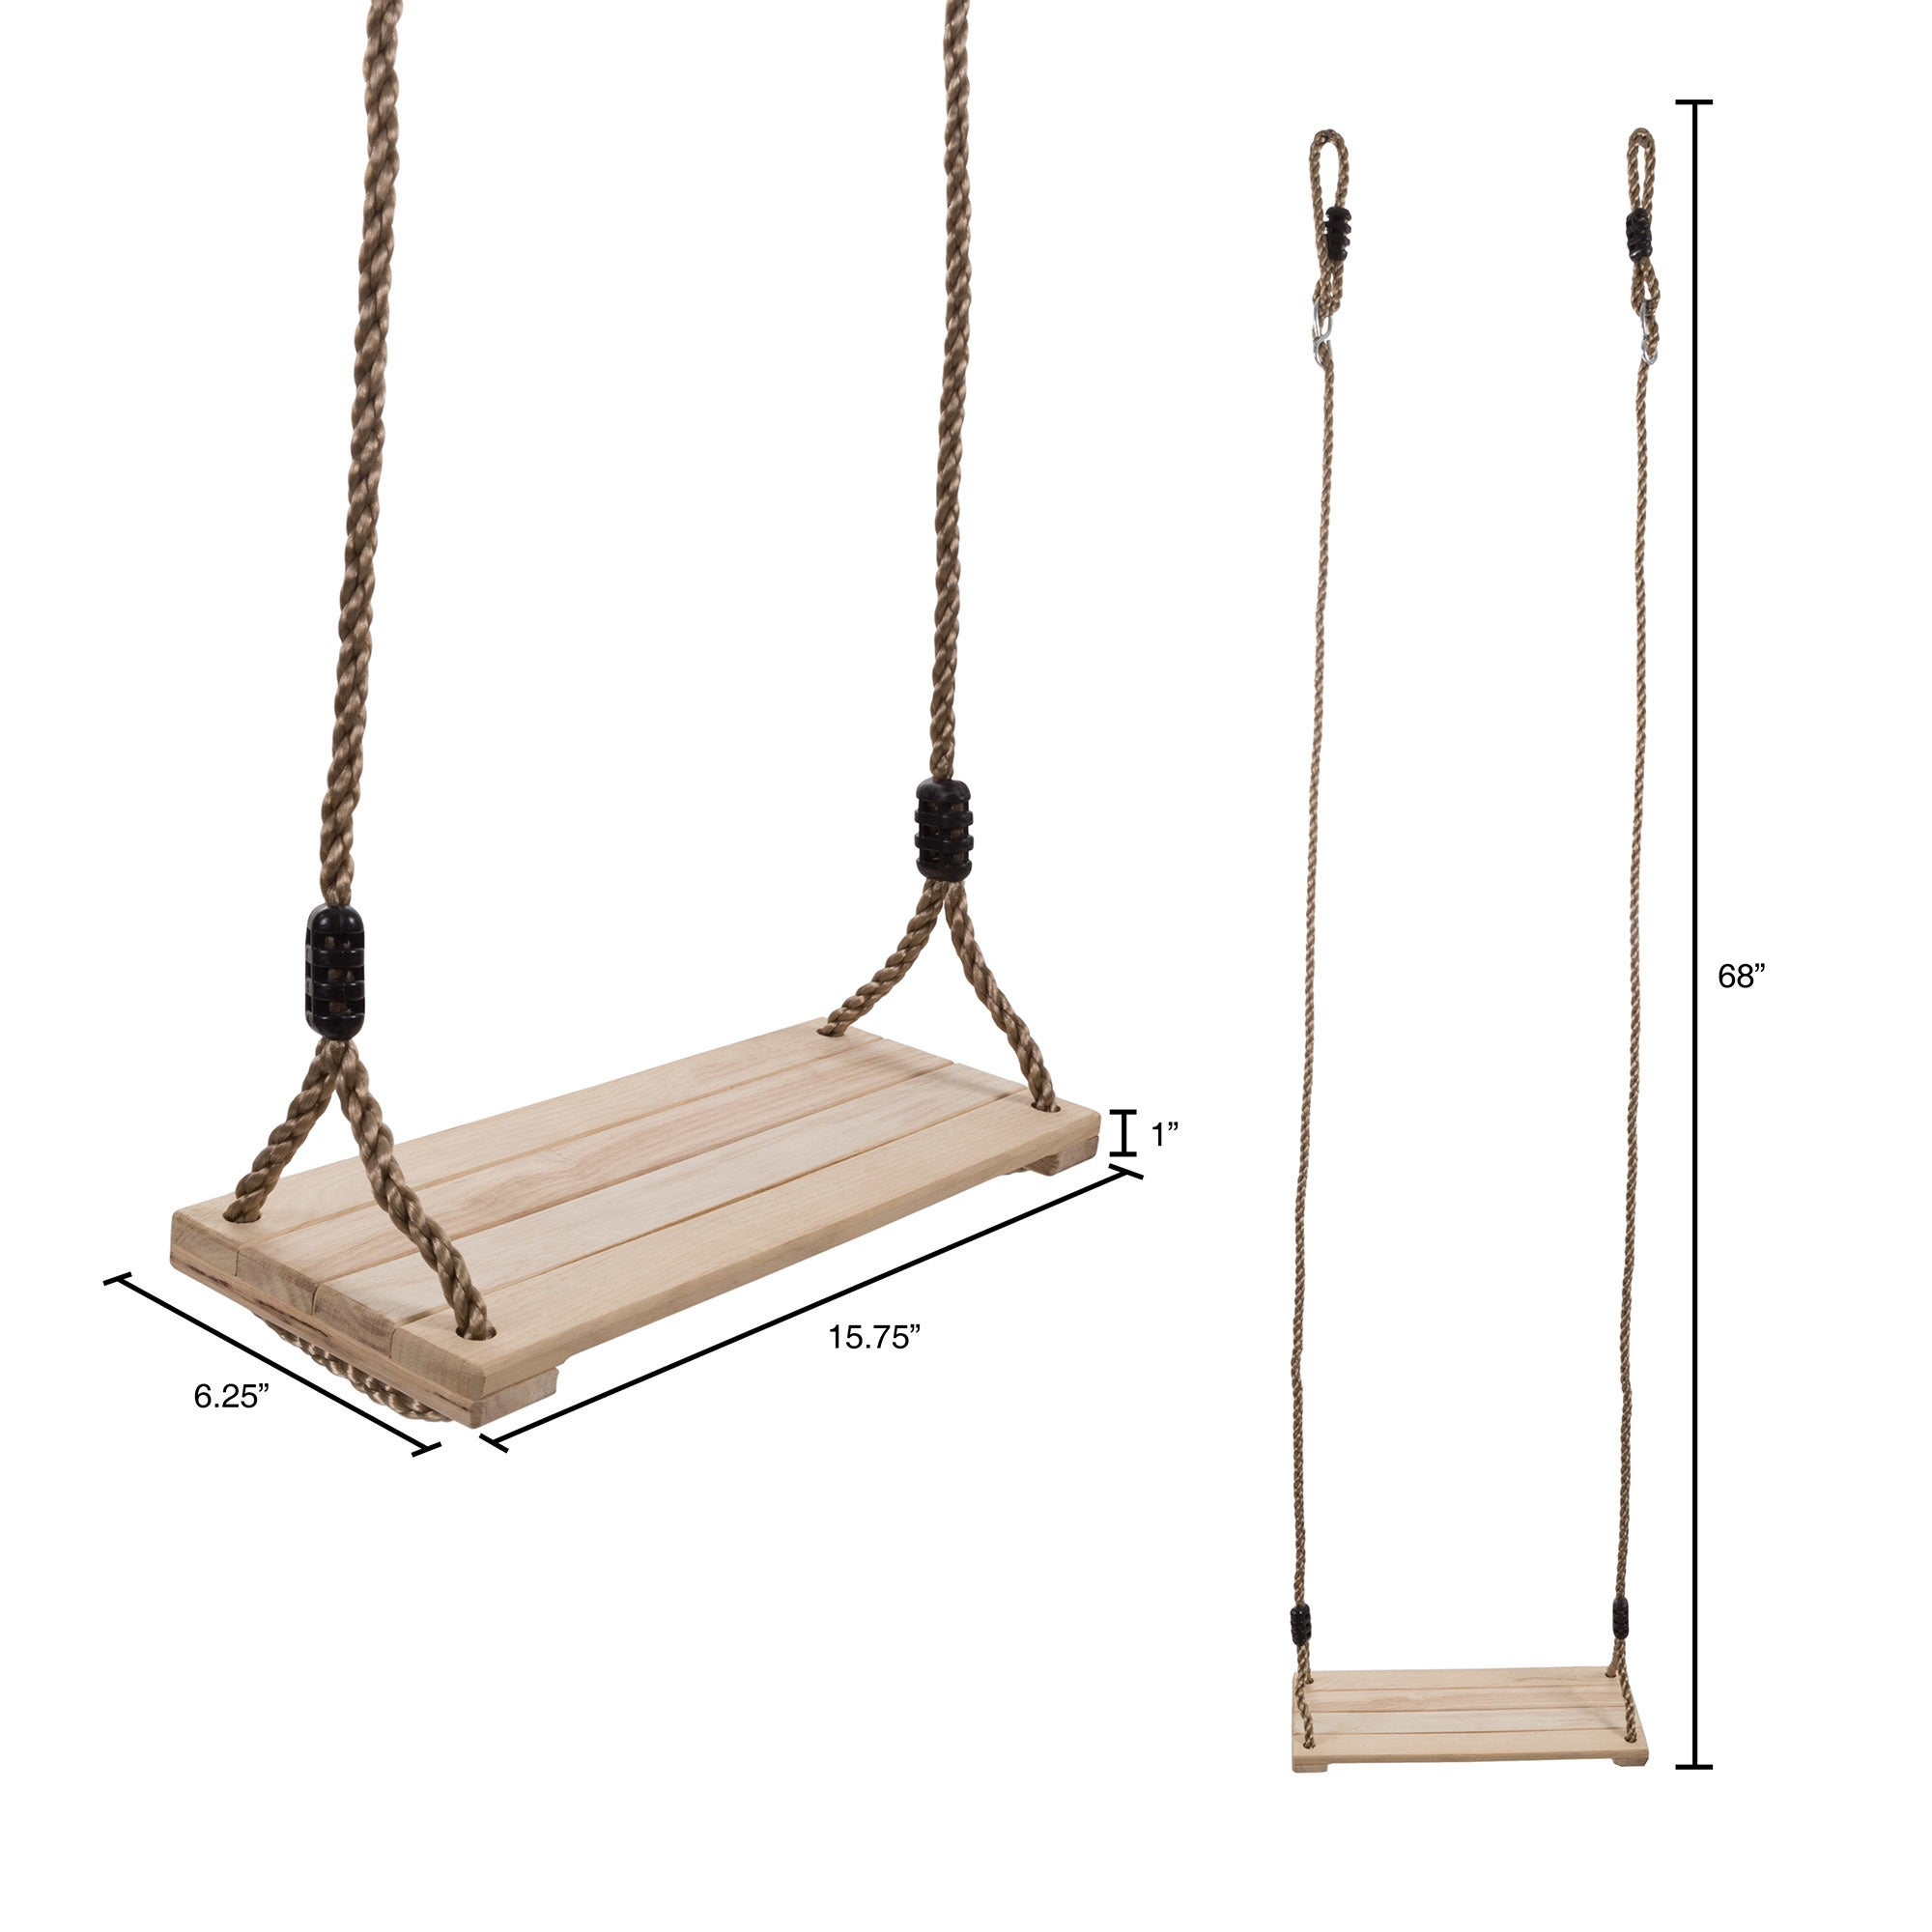 Wooden Swing, Outdoor Flat Bench Seat with Adjustable Nylon Hanging Rope  for Kids Playset Frame or Tree Hey! Play!